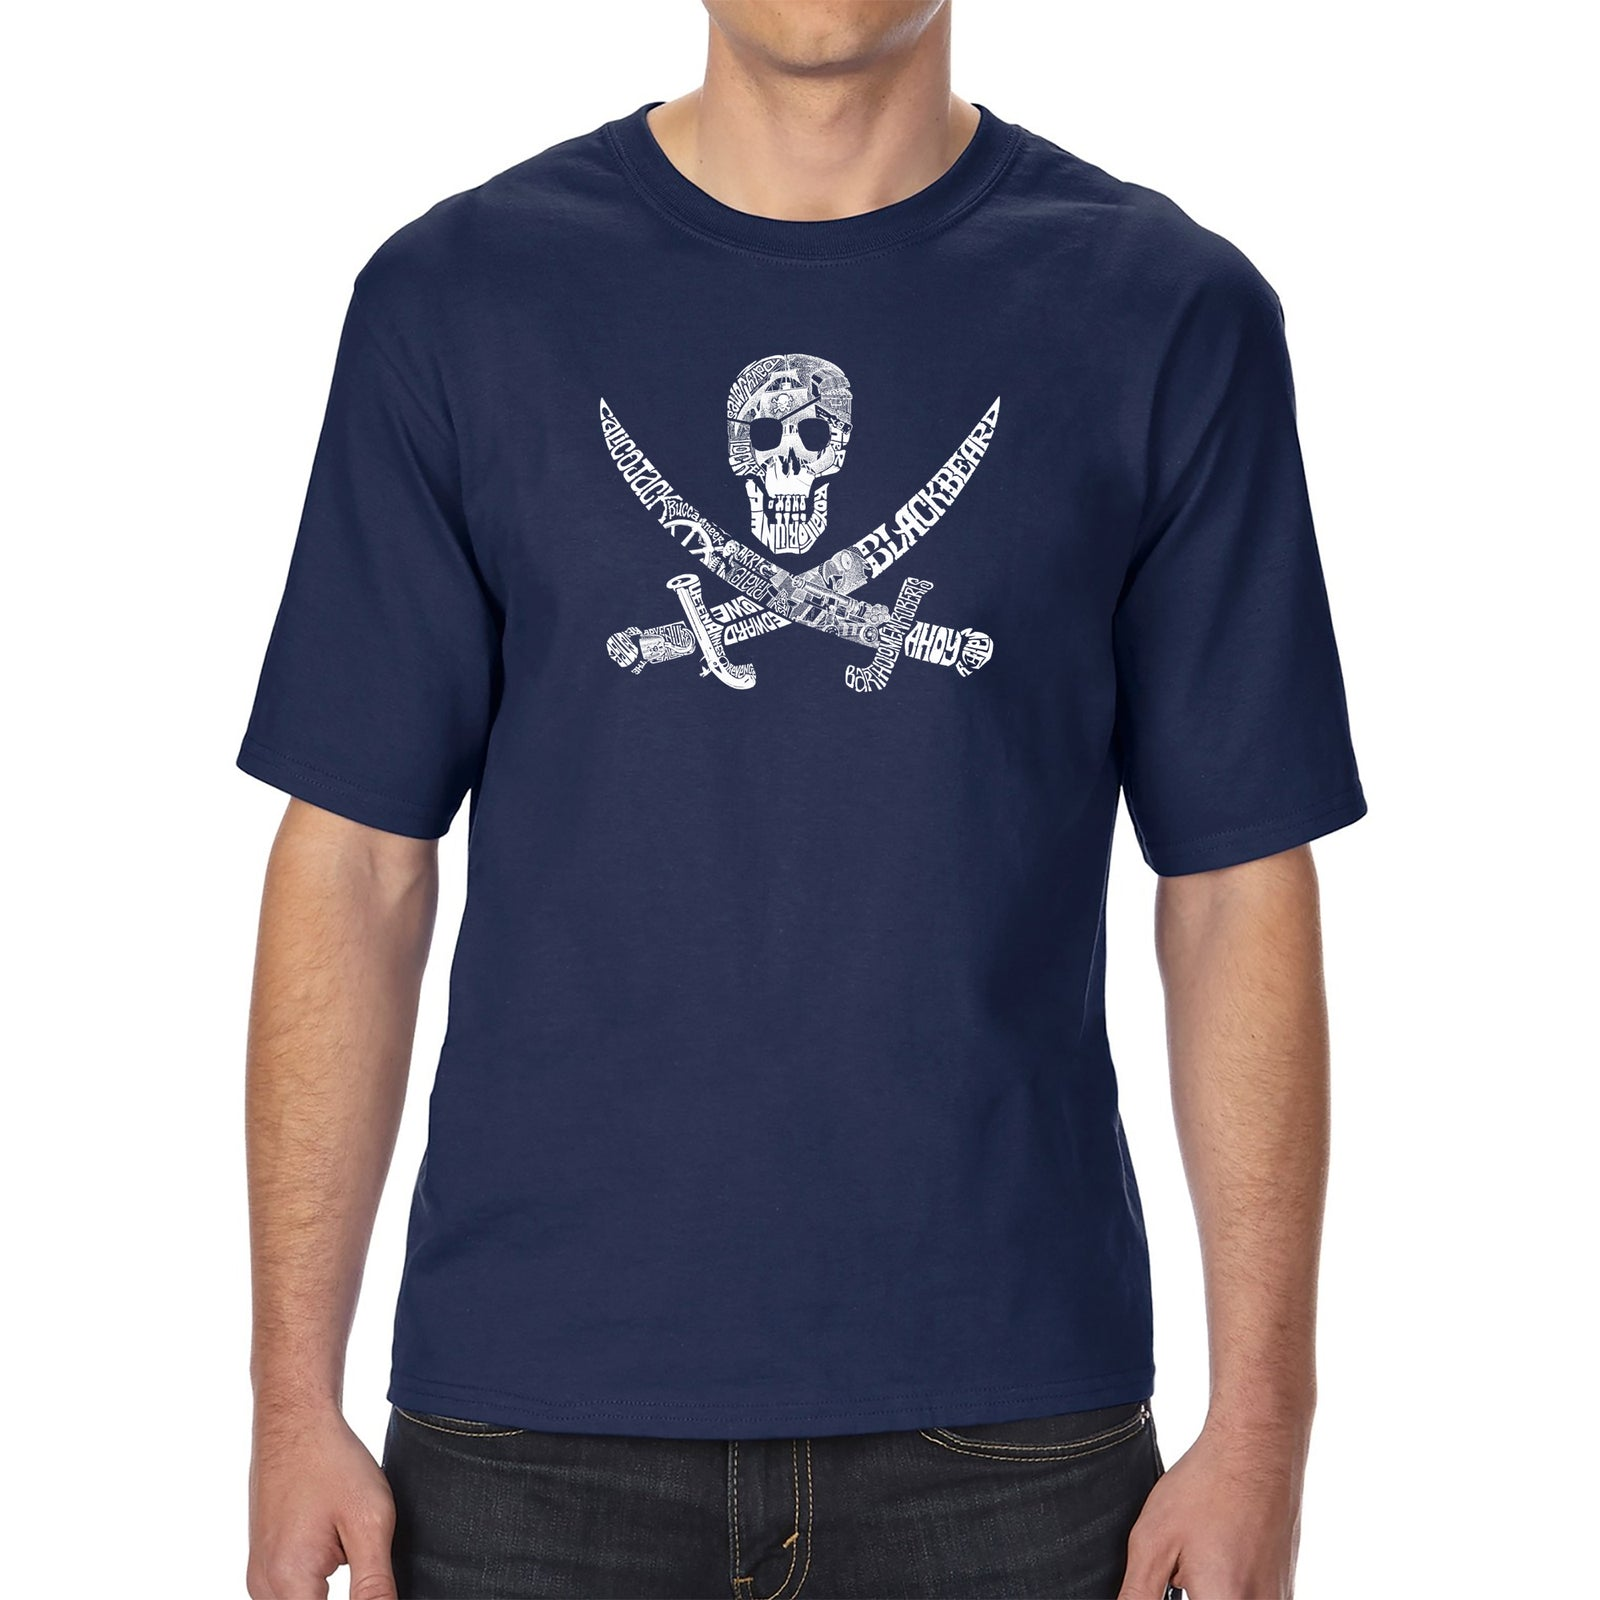 Men's Tall and Long Word Art T-shirt - PIRATE CAPTAINS, SHIPS AND IMAGERY